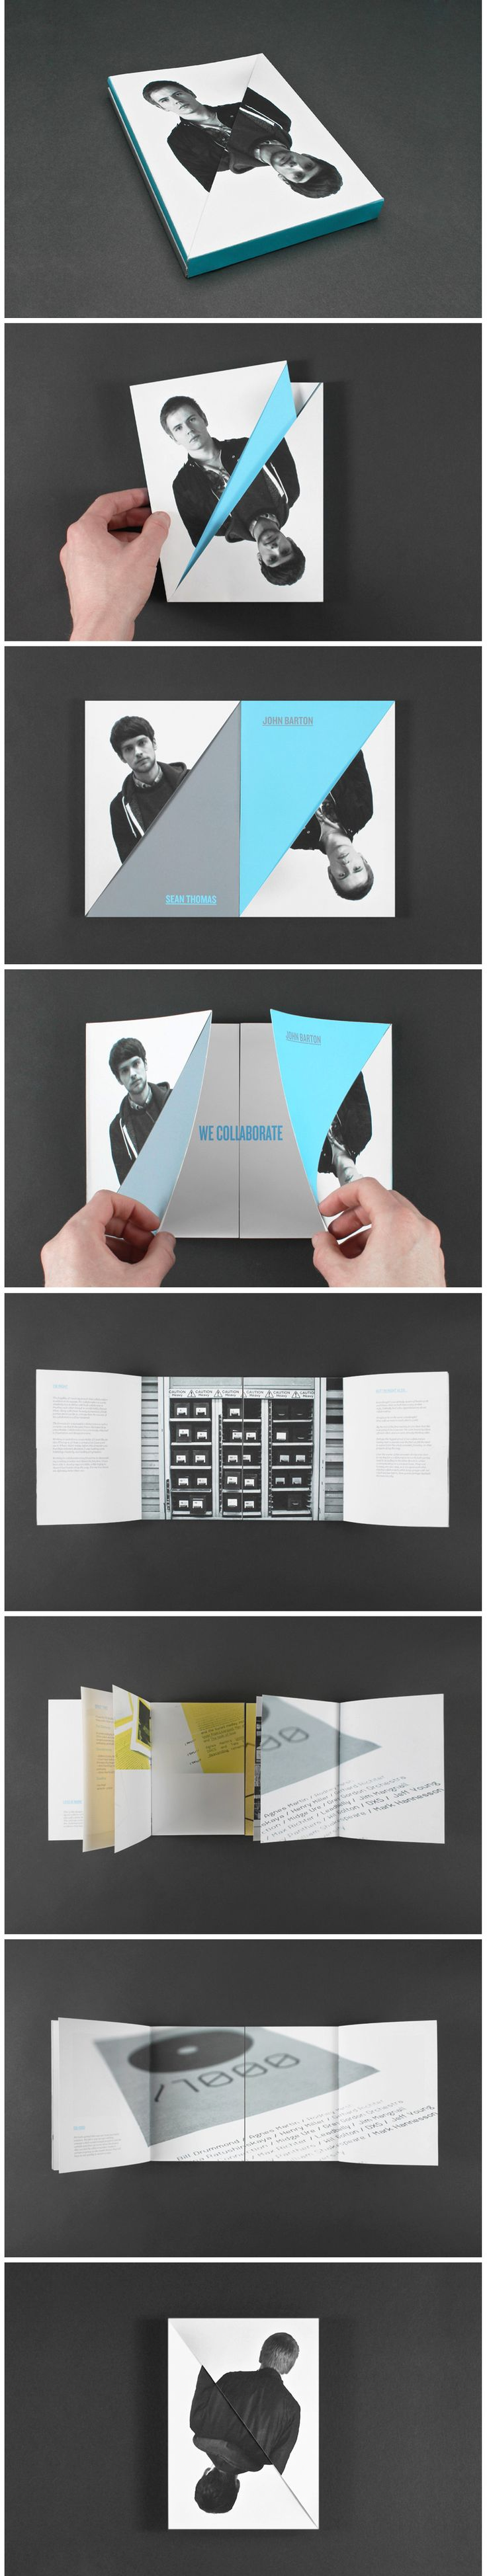 John Barton and Sean Thomas – We Collaborate, promotion/editorial design